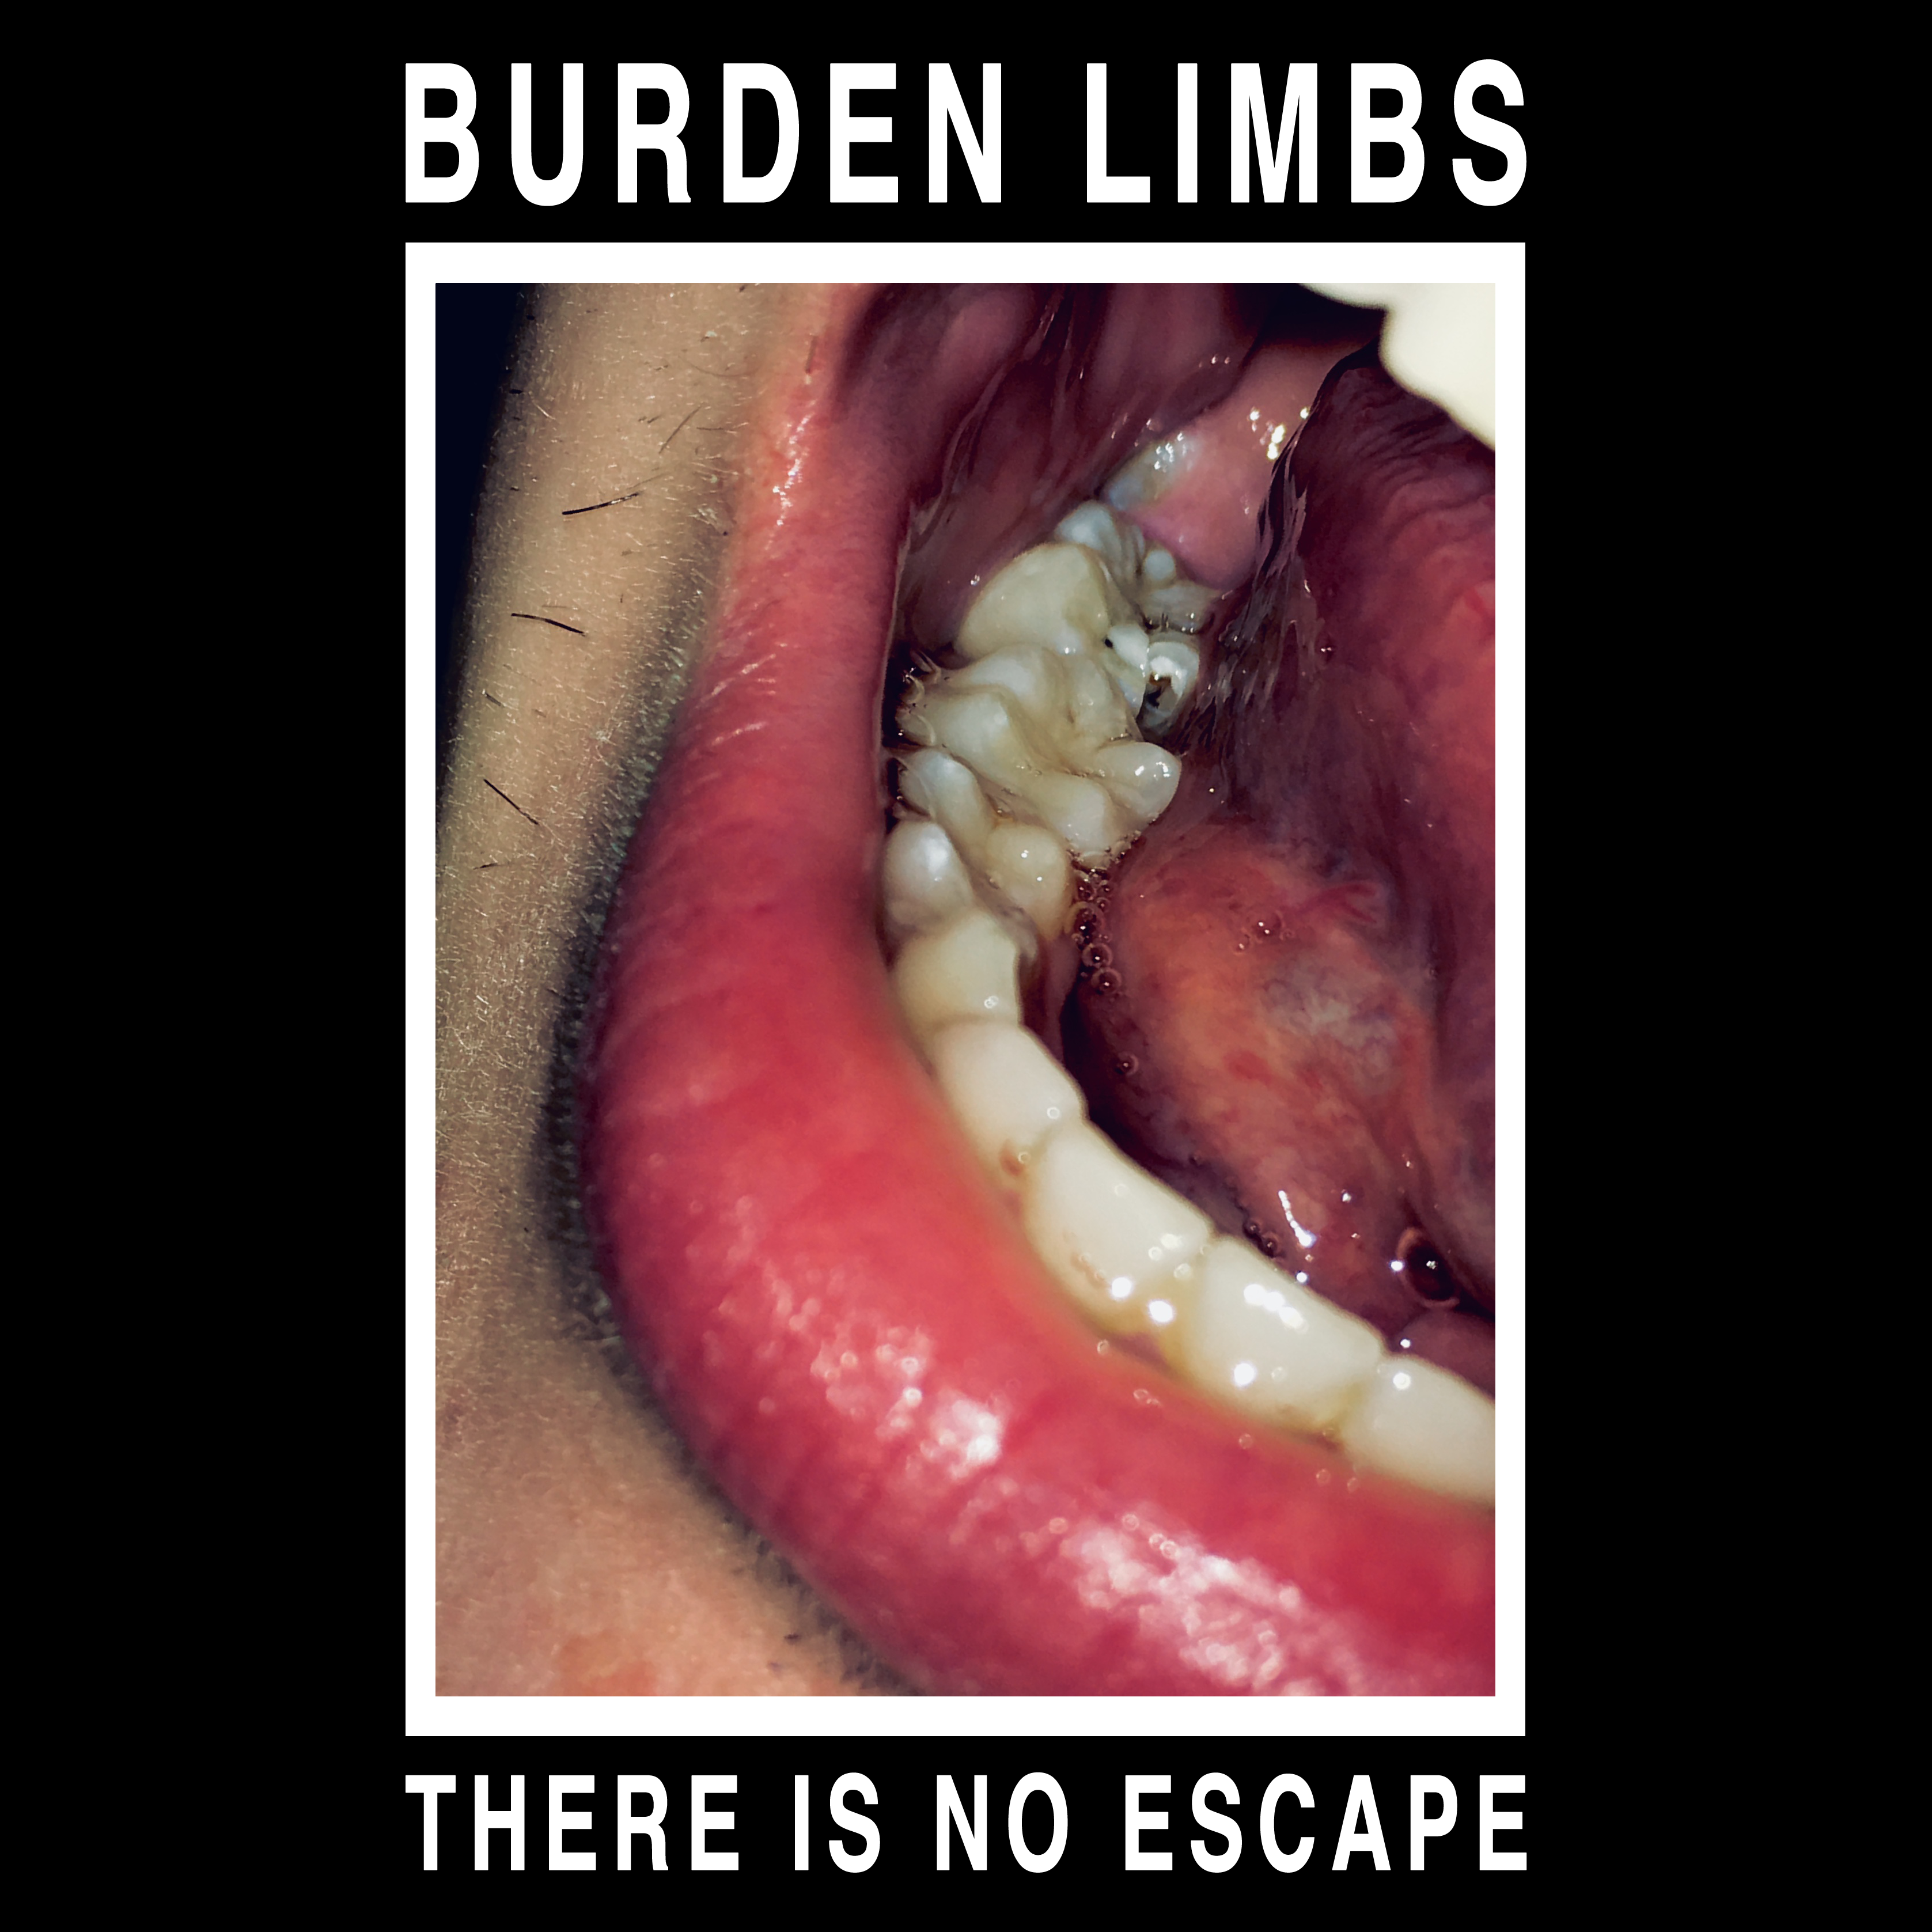 Burden Limbs - 'There Is No Escape' T-Shirt